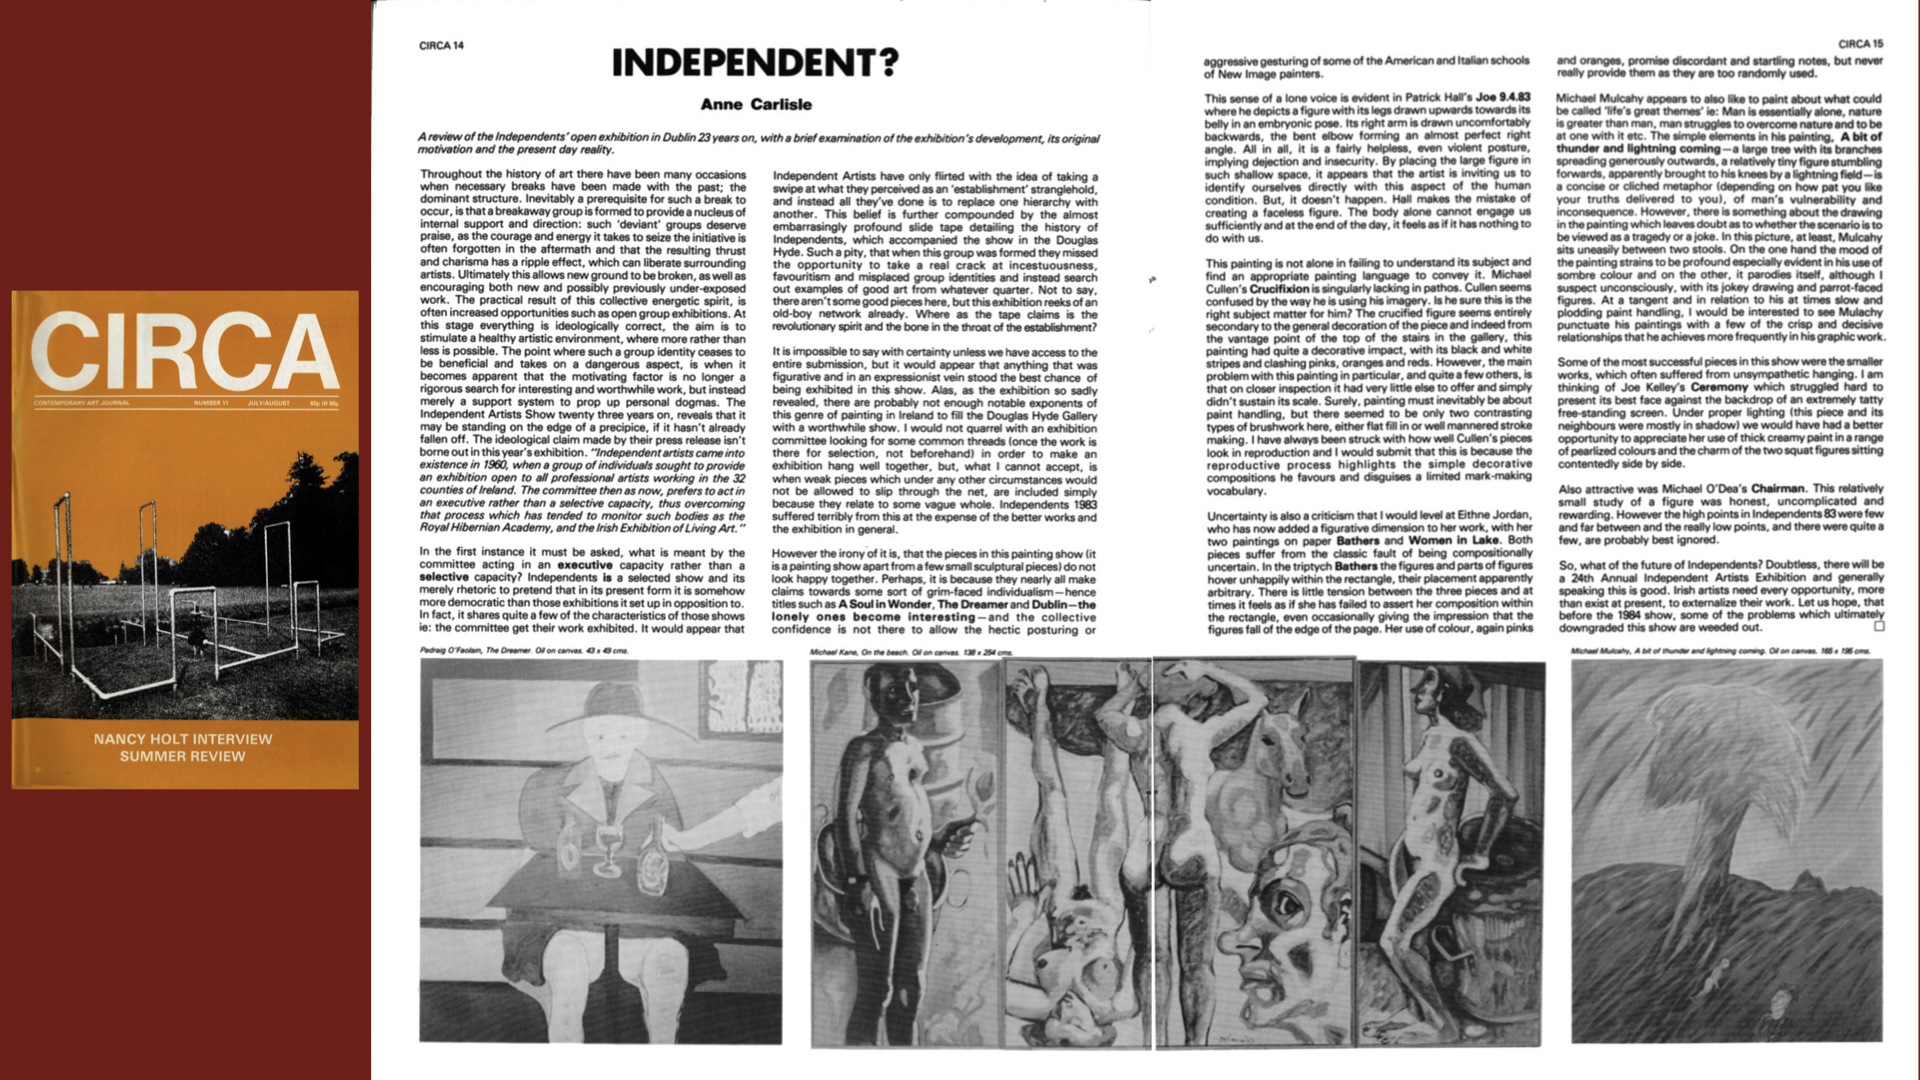 CIRCA Issue #11 – Anne Carlisle / Independent?